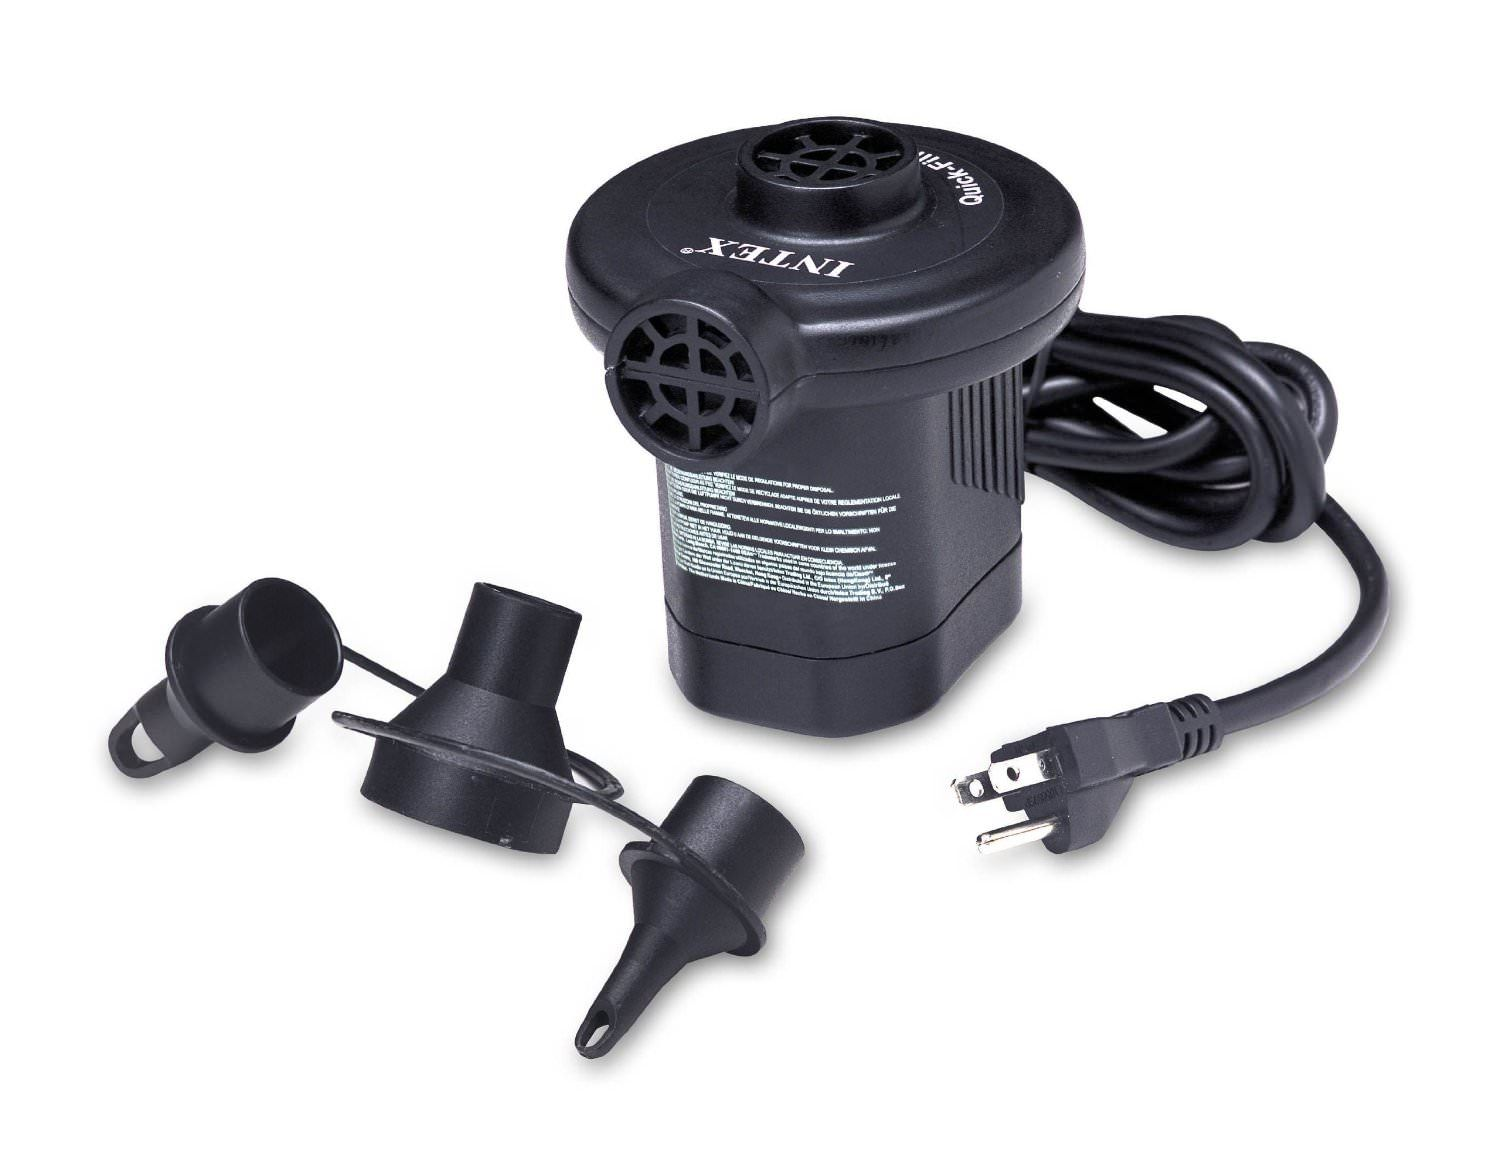 Intex ITX-90-6618 - Intex Electric Quickfill Air Pump 66619E